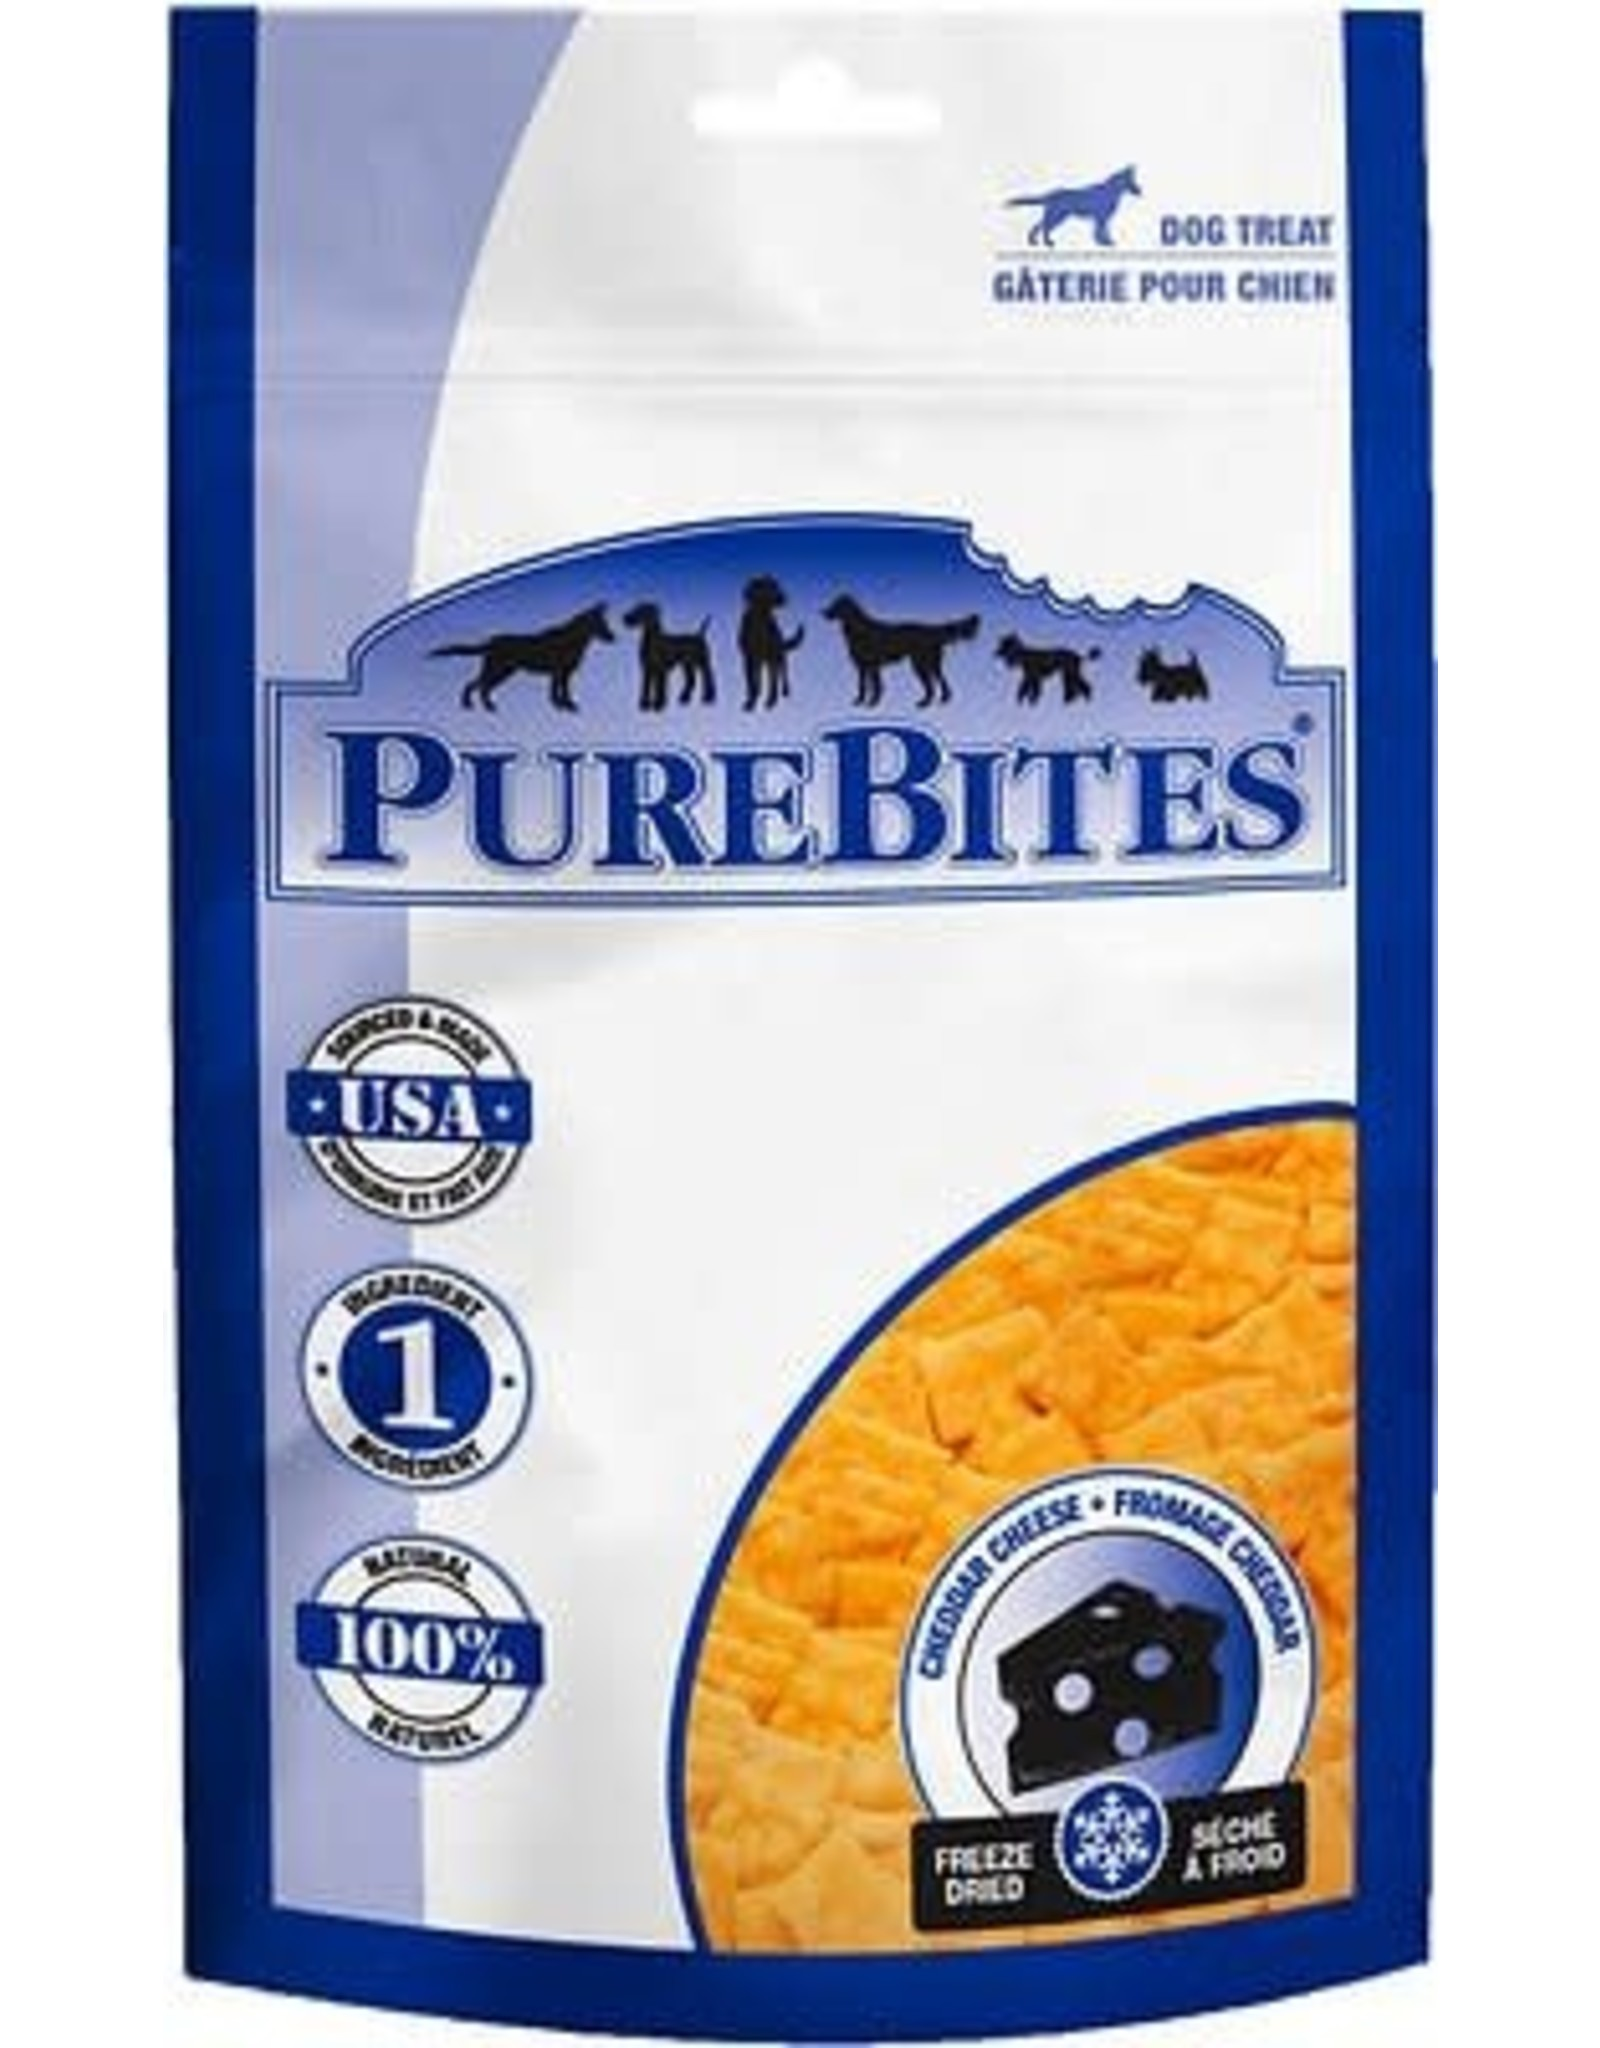 Pure Bites Purebites Cheddar Cheese 57 G